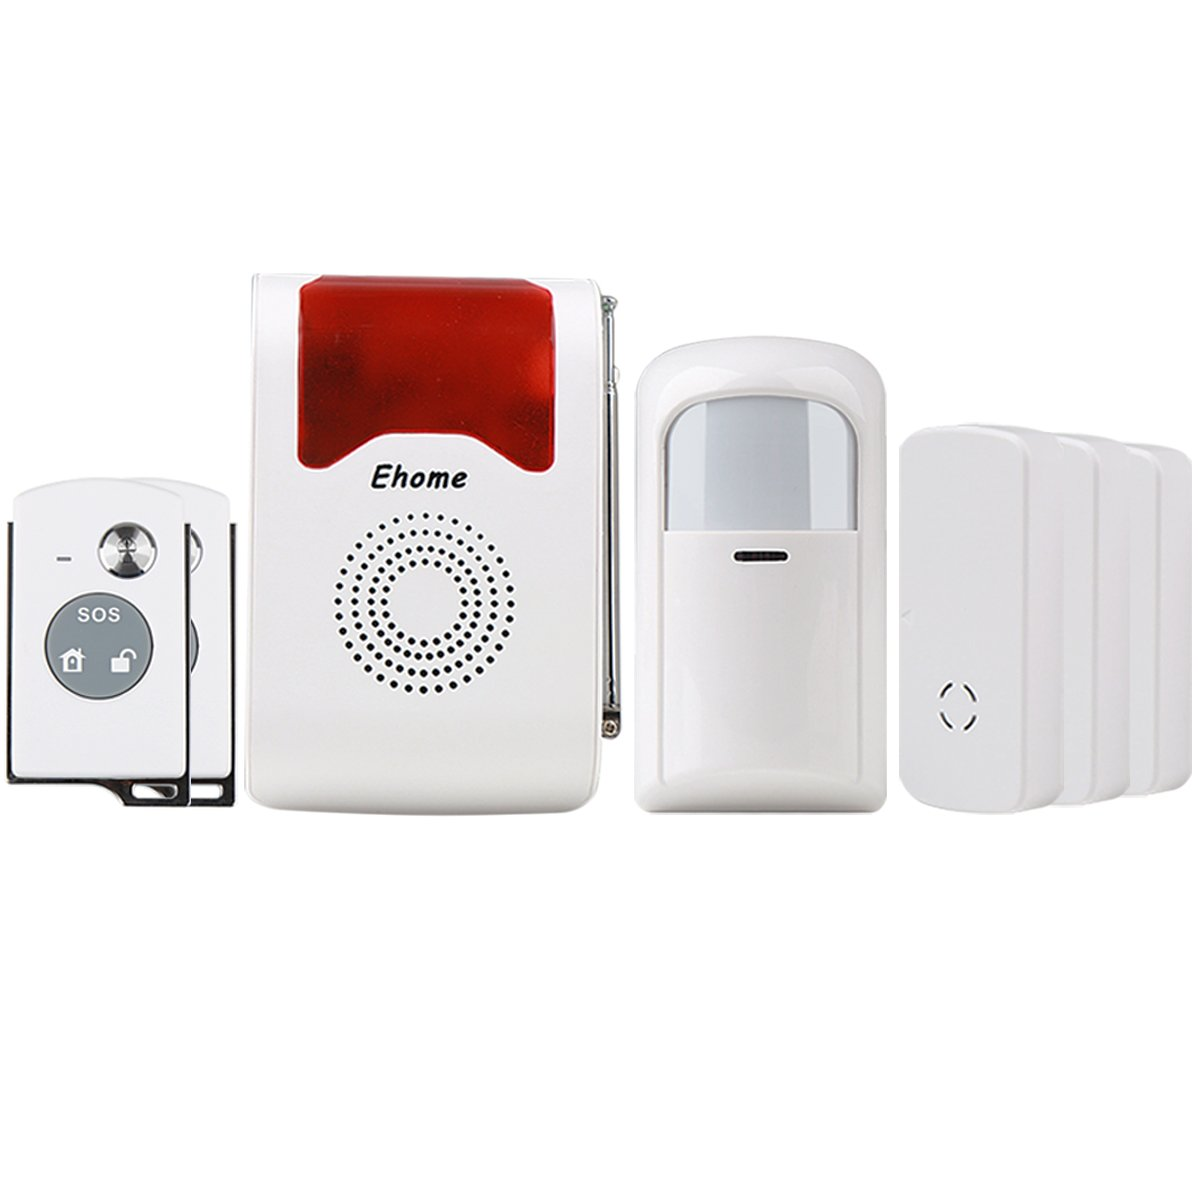 Ehome Wireless Acousto-optic Home Security Alarm System, Wireless PIR Motion Infrared Detector + 3 pairs Door Alarm Sensor Anti-Theft SOS System with 2pcs Remote Controller